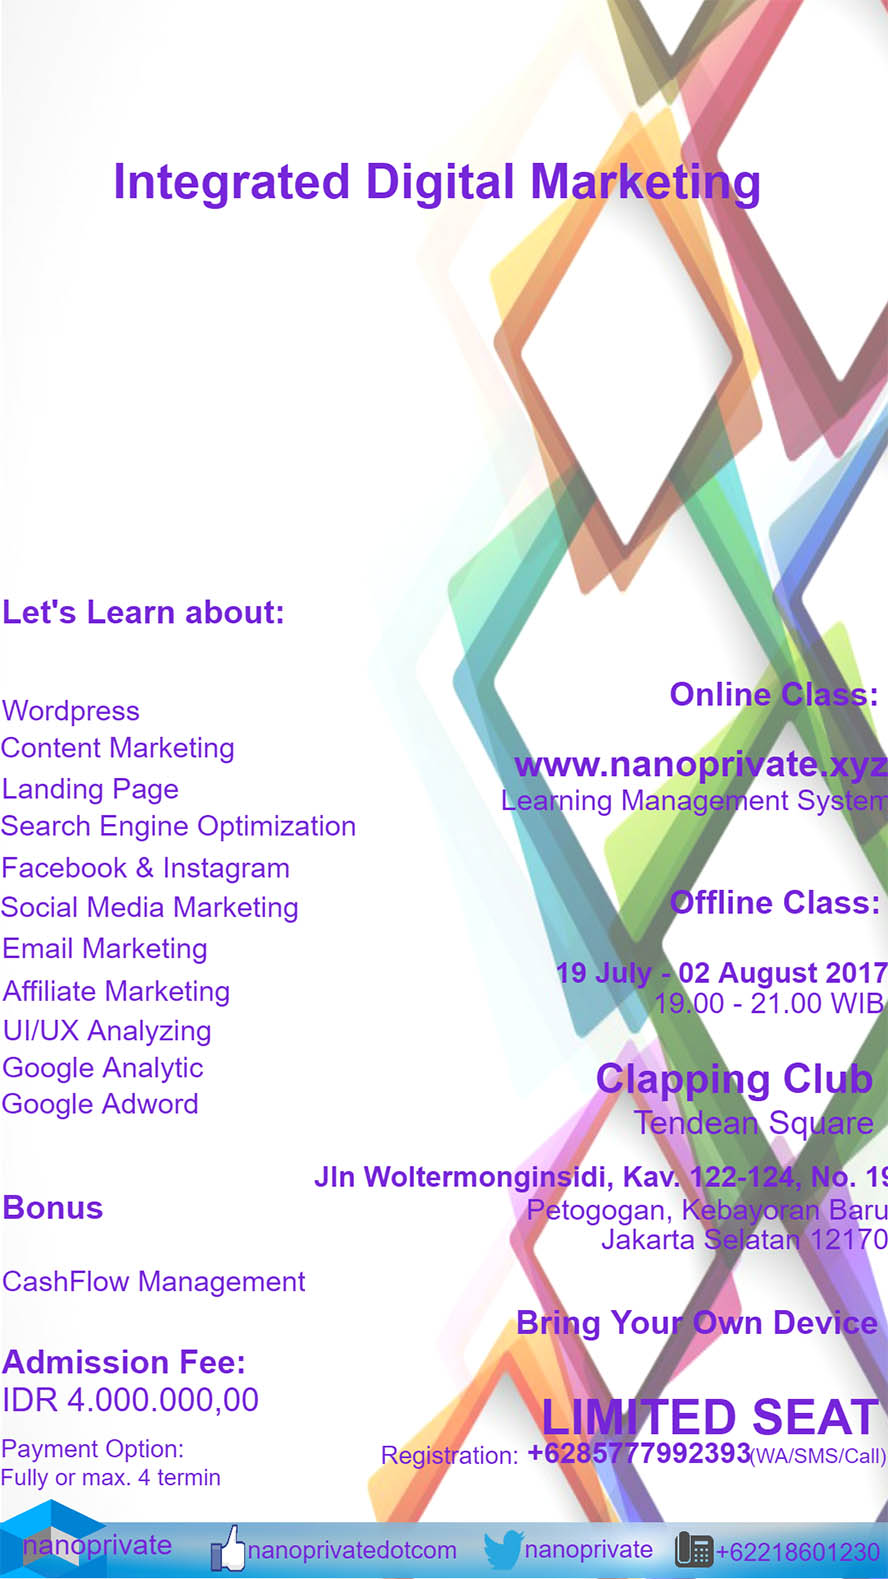 Nanoprivate Integrated Digital Marketing - Clapping Club Jakarta, 19 Juli- 2 Agustus 2017